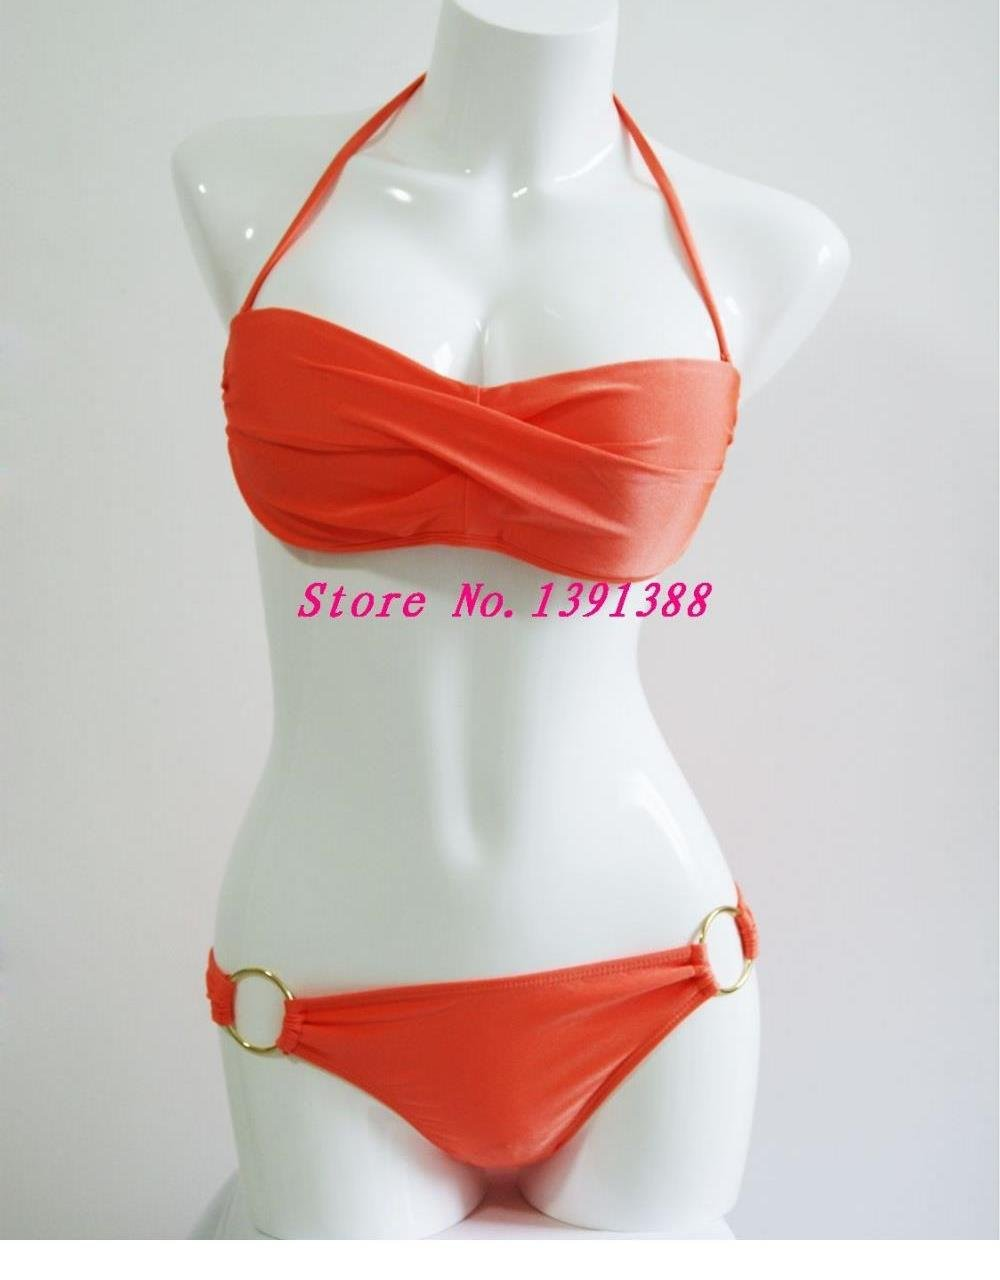 Women Fashion Summer Halter Bathing Suit Bikini Swimwear W399432